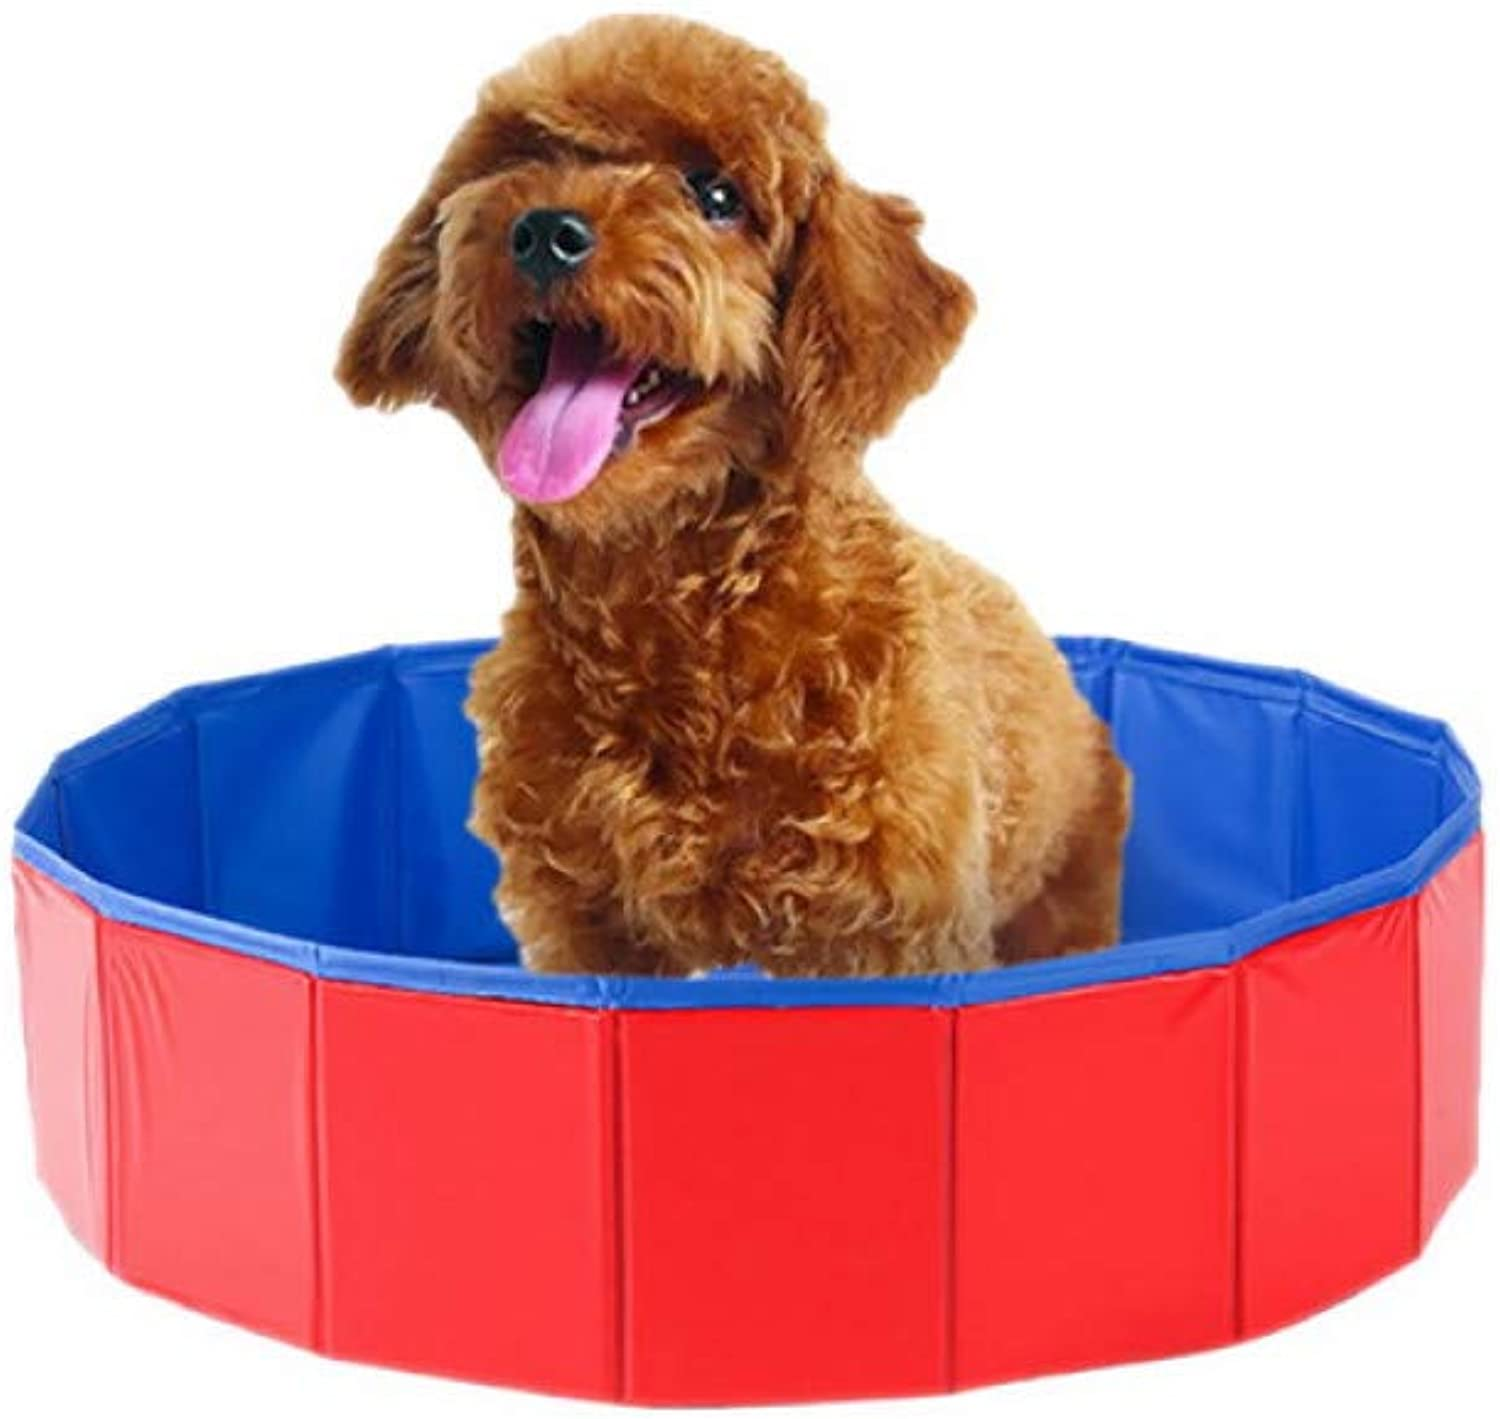 Cat dog bath suitable for medium large dogs for pets bath for small dogs PVC can be equipped with waterproof pet accessories for dog baths